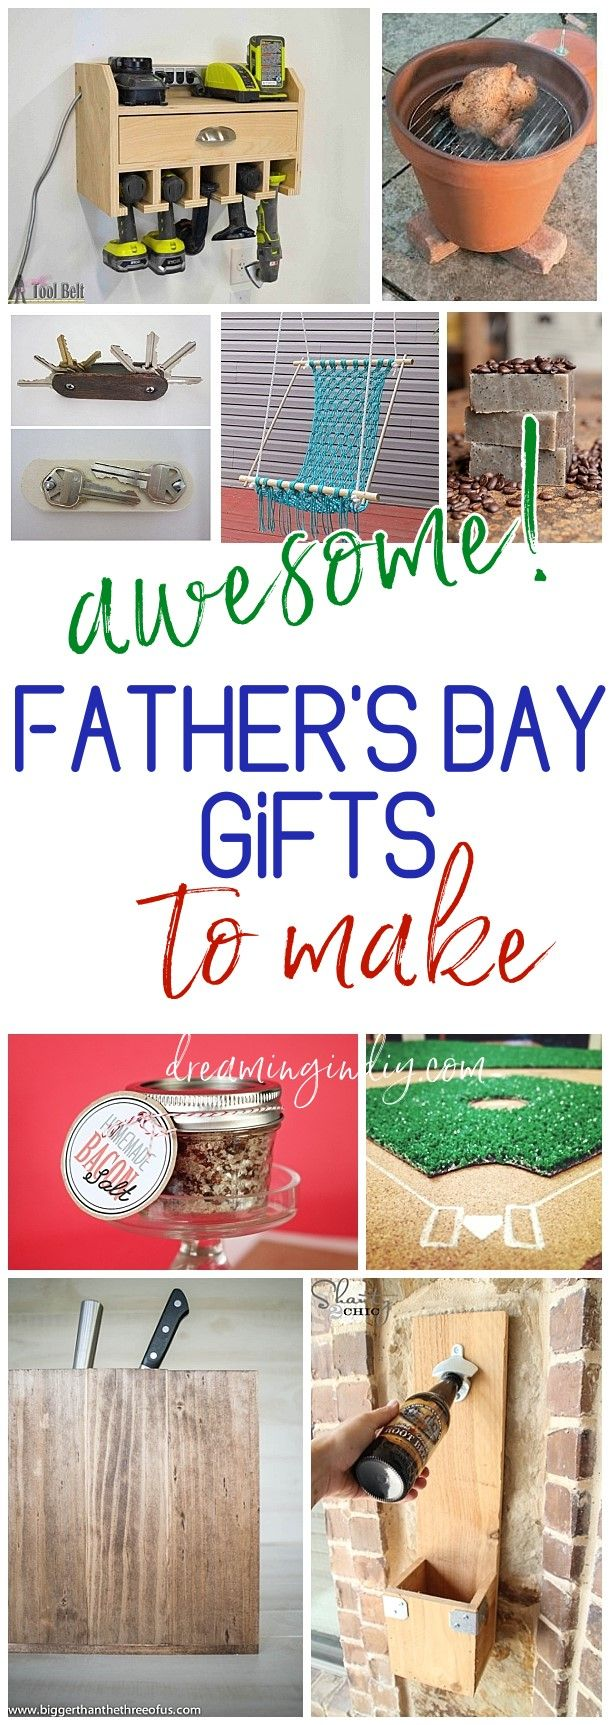 A Do It Yourself Father's Day DIY Gift Projects, Recipes and Ideas Dad will LOVE! - Cool fathers day gifts, Father's day diy, Diy projects gifts, Diy gifts for men, Diy holiday gifts, Diy gifts for dad - It's that time of year! Time to start thinking about what to make for your HERO and for your Kids' Hero! While Dads seriously do love framed handprint art and watercolor pai…